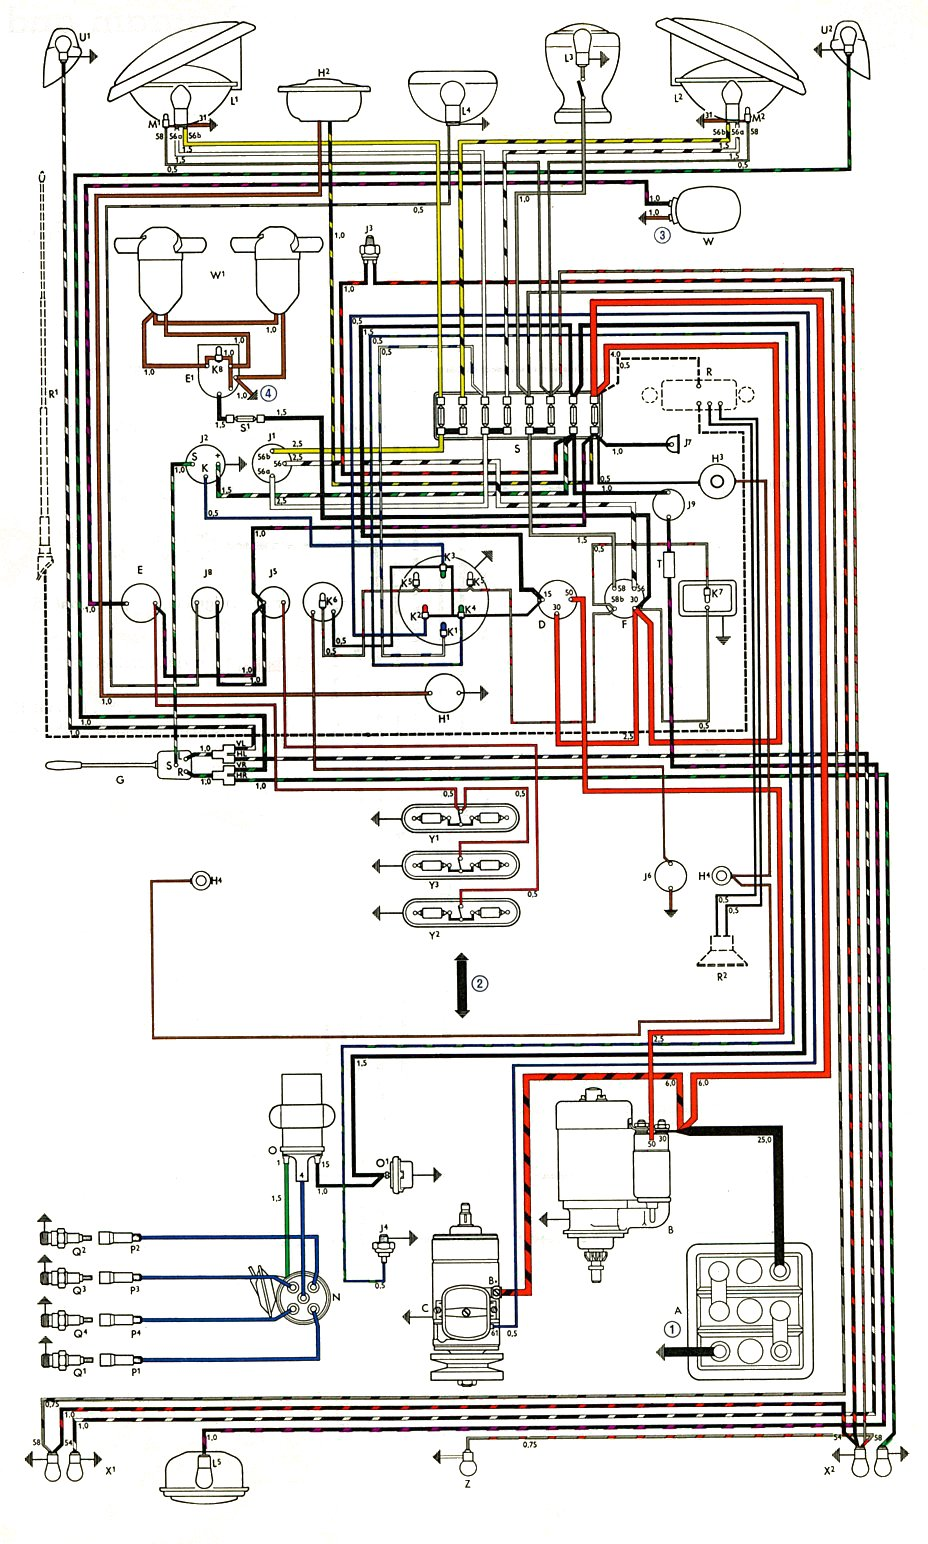 hight resolution of thesamba com type 2 wiring diagrams split window vw bus fuse box